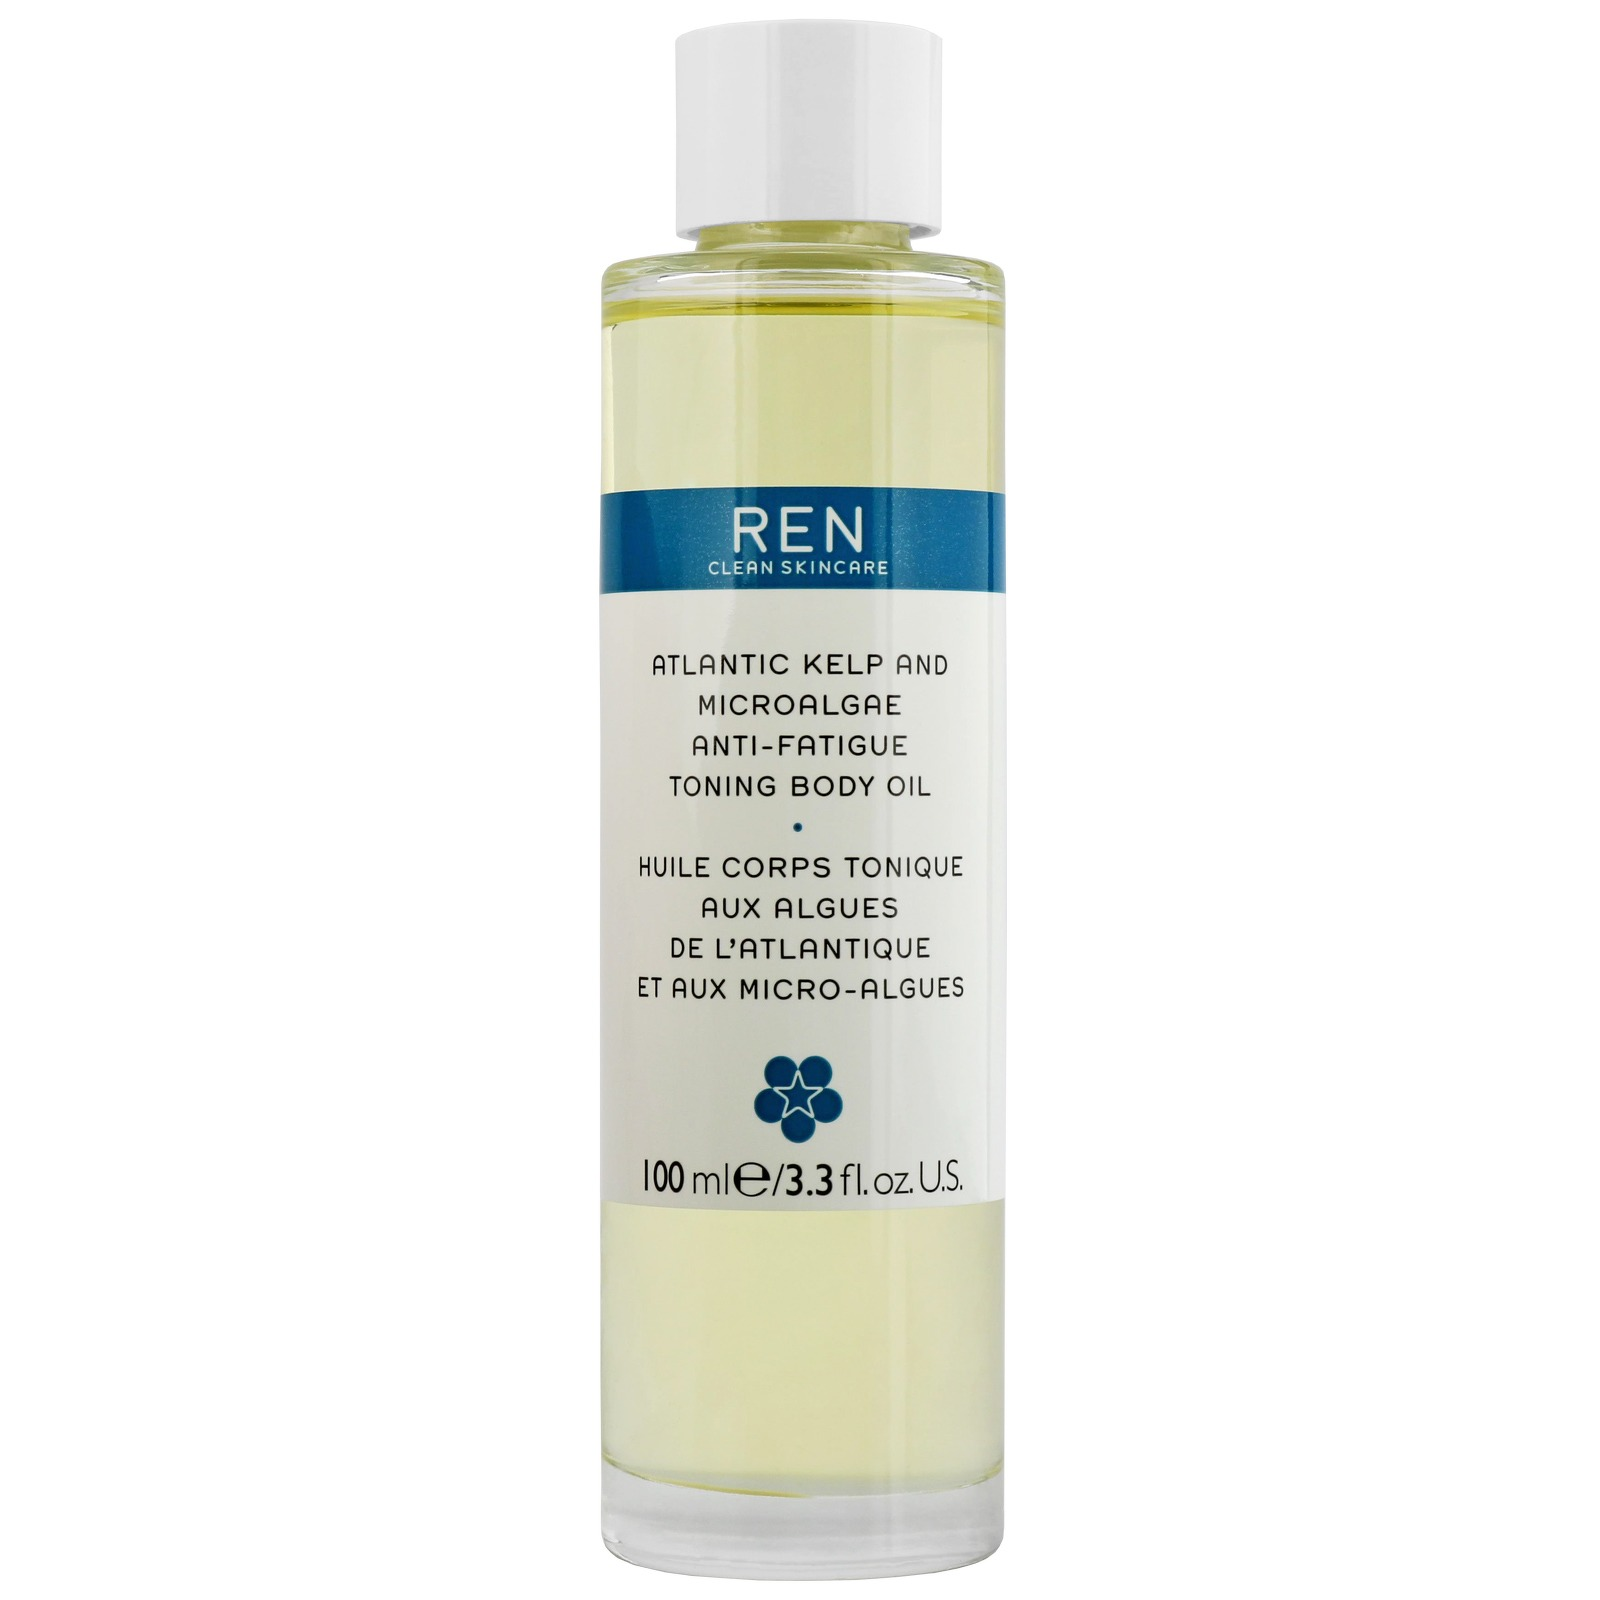 REN Clean Skincare Body  Atlantic Kelp and Microalgae Anti-Fatigue Toning Body Oil 100ml / 3.3 fl.oz.